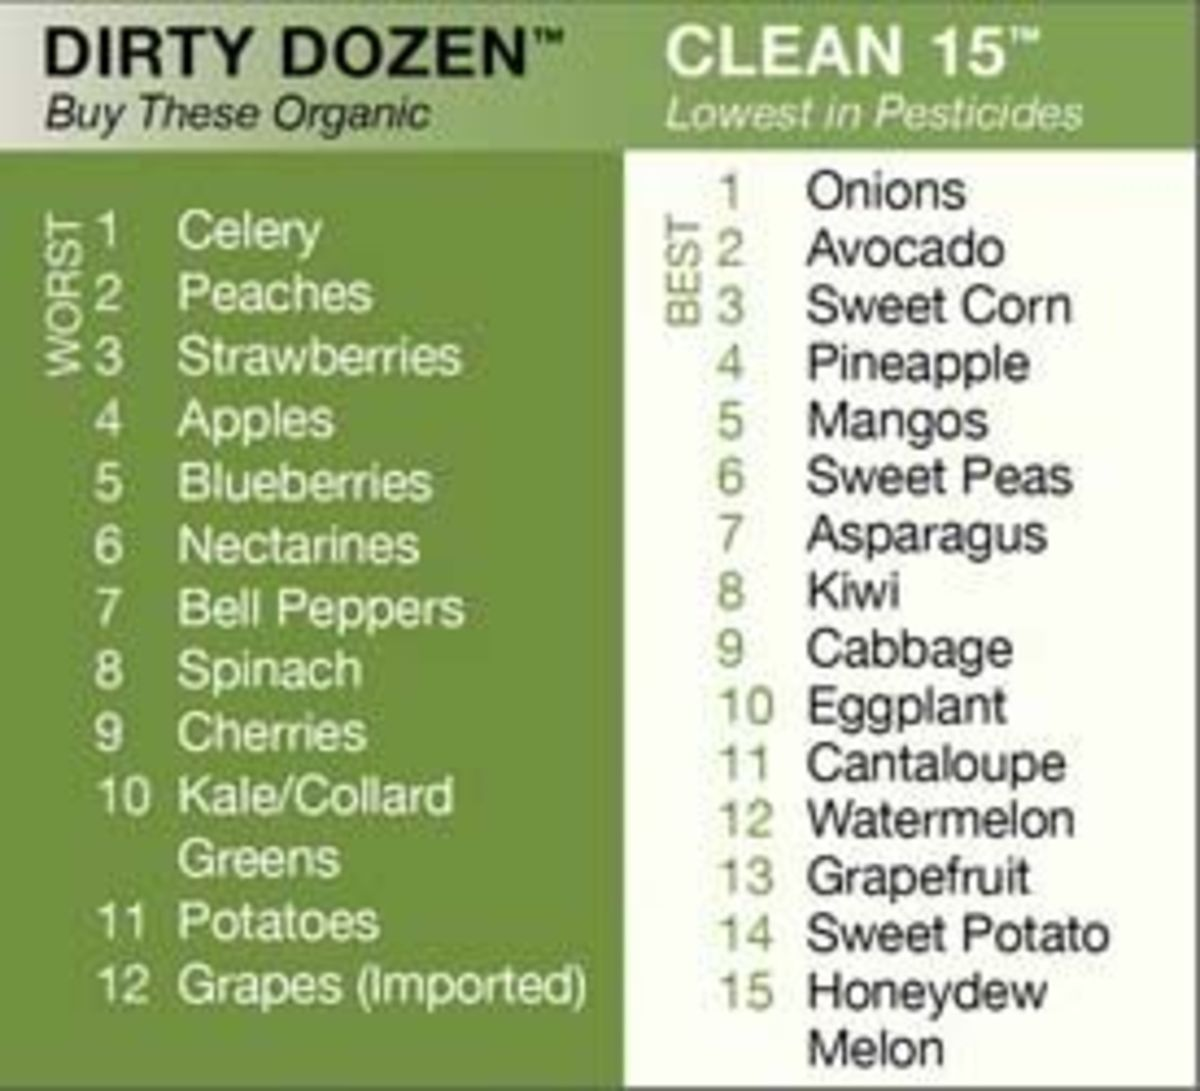 environmental working group's dirty dozen